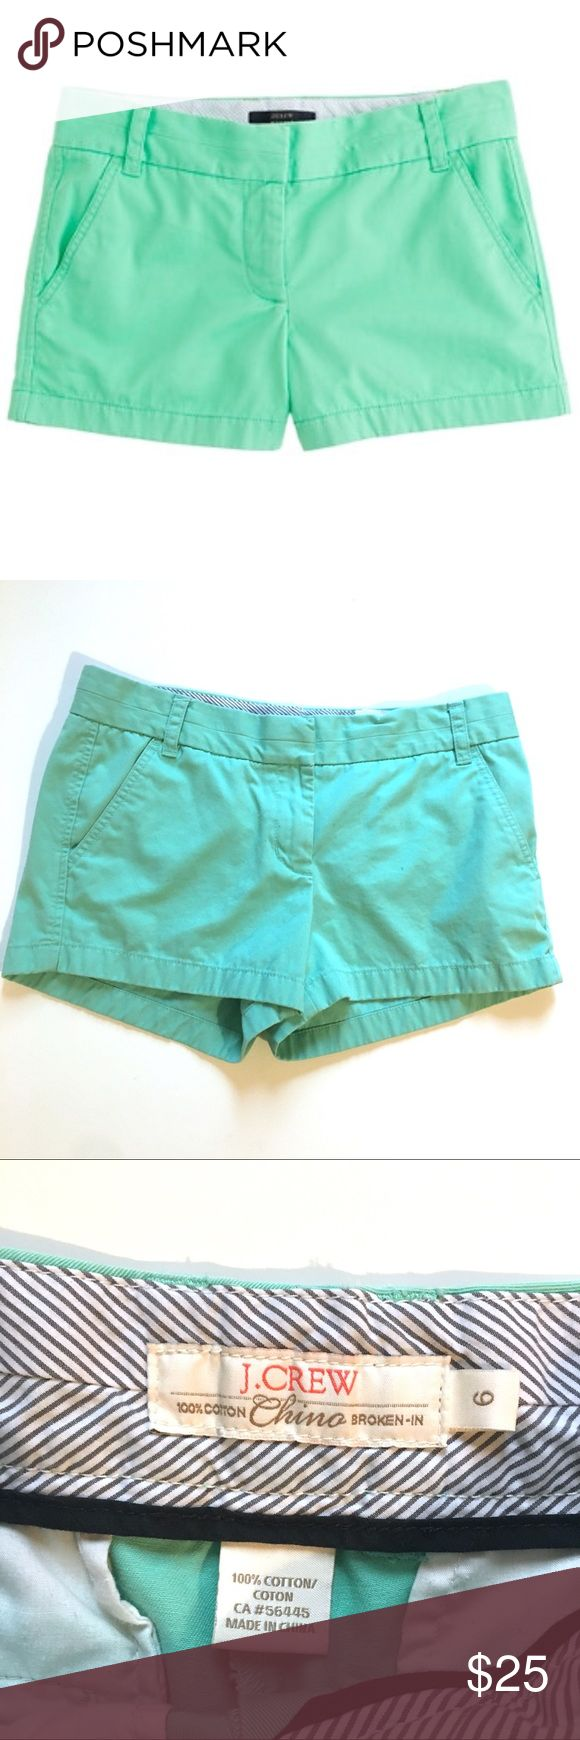 J. Crew Chino Teal Shorts J. Crew Chino Teal Shorts. Great condition! J. Crew Shorts